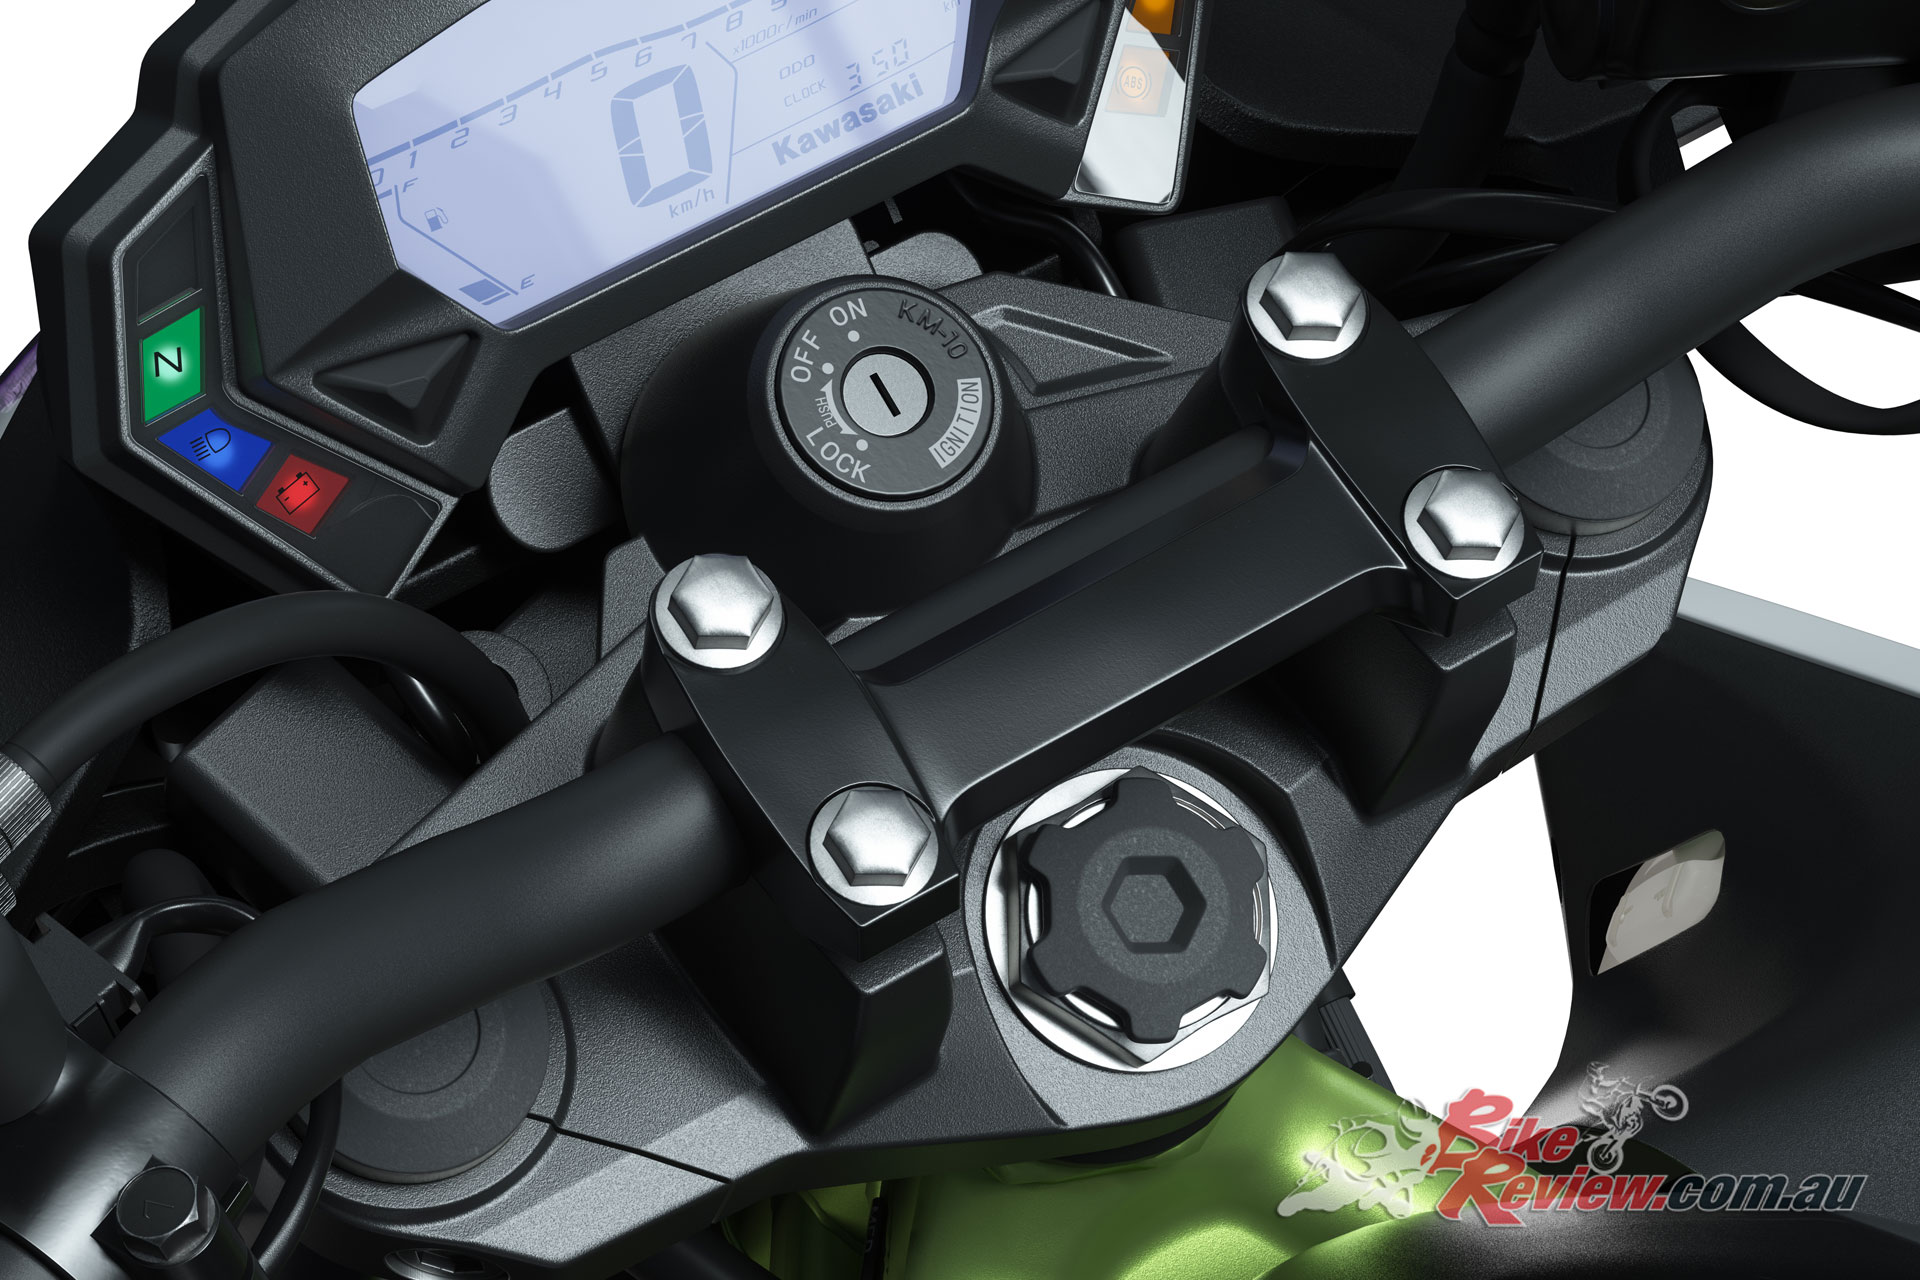 2019 Kawasaki Z125 - Electric Start